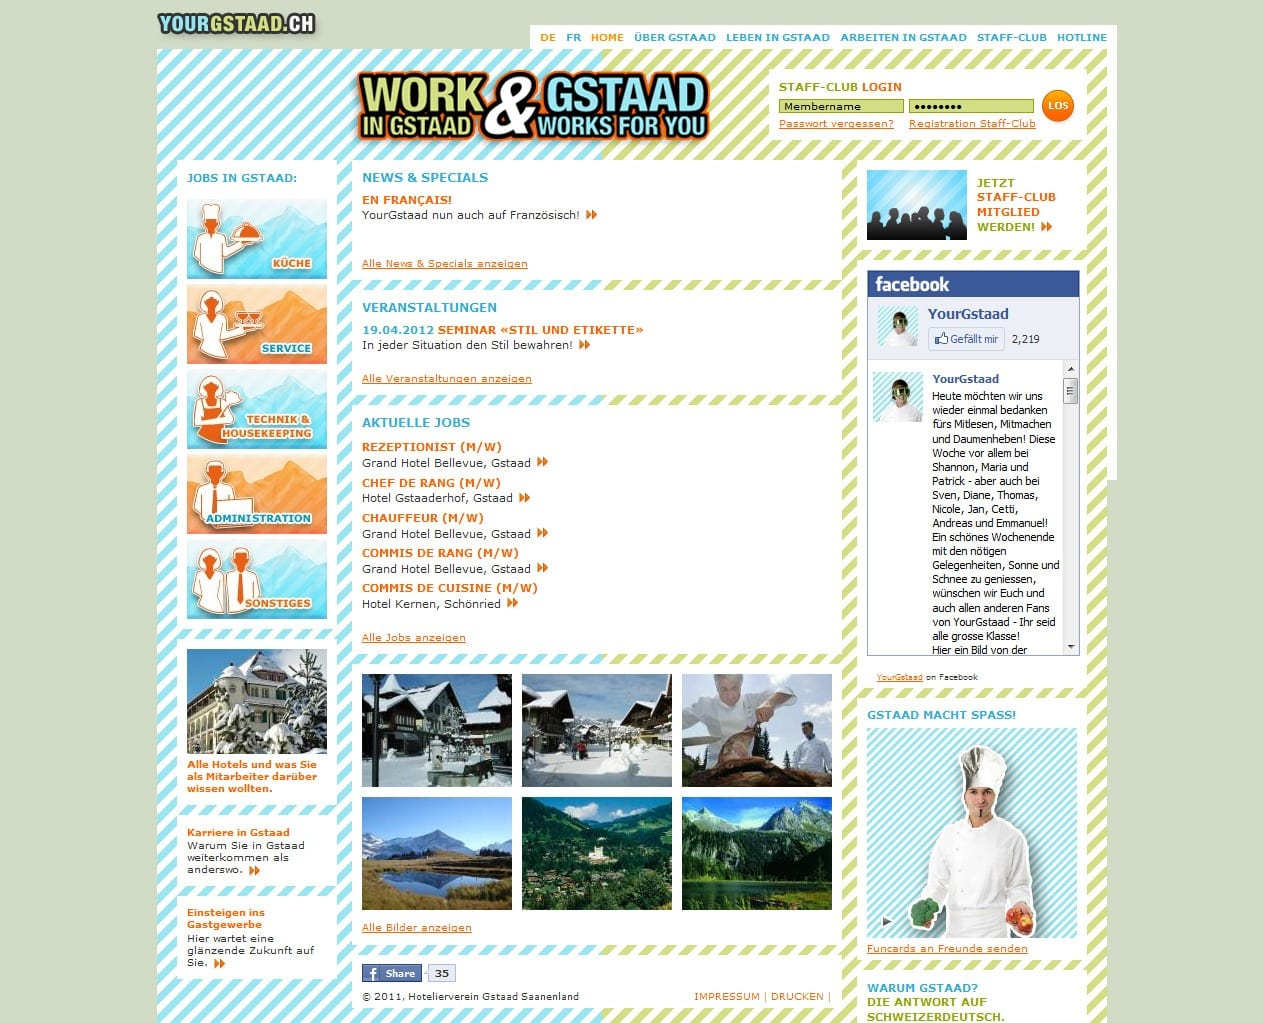 Work in Gstaad and Gstaad works for you